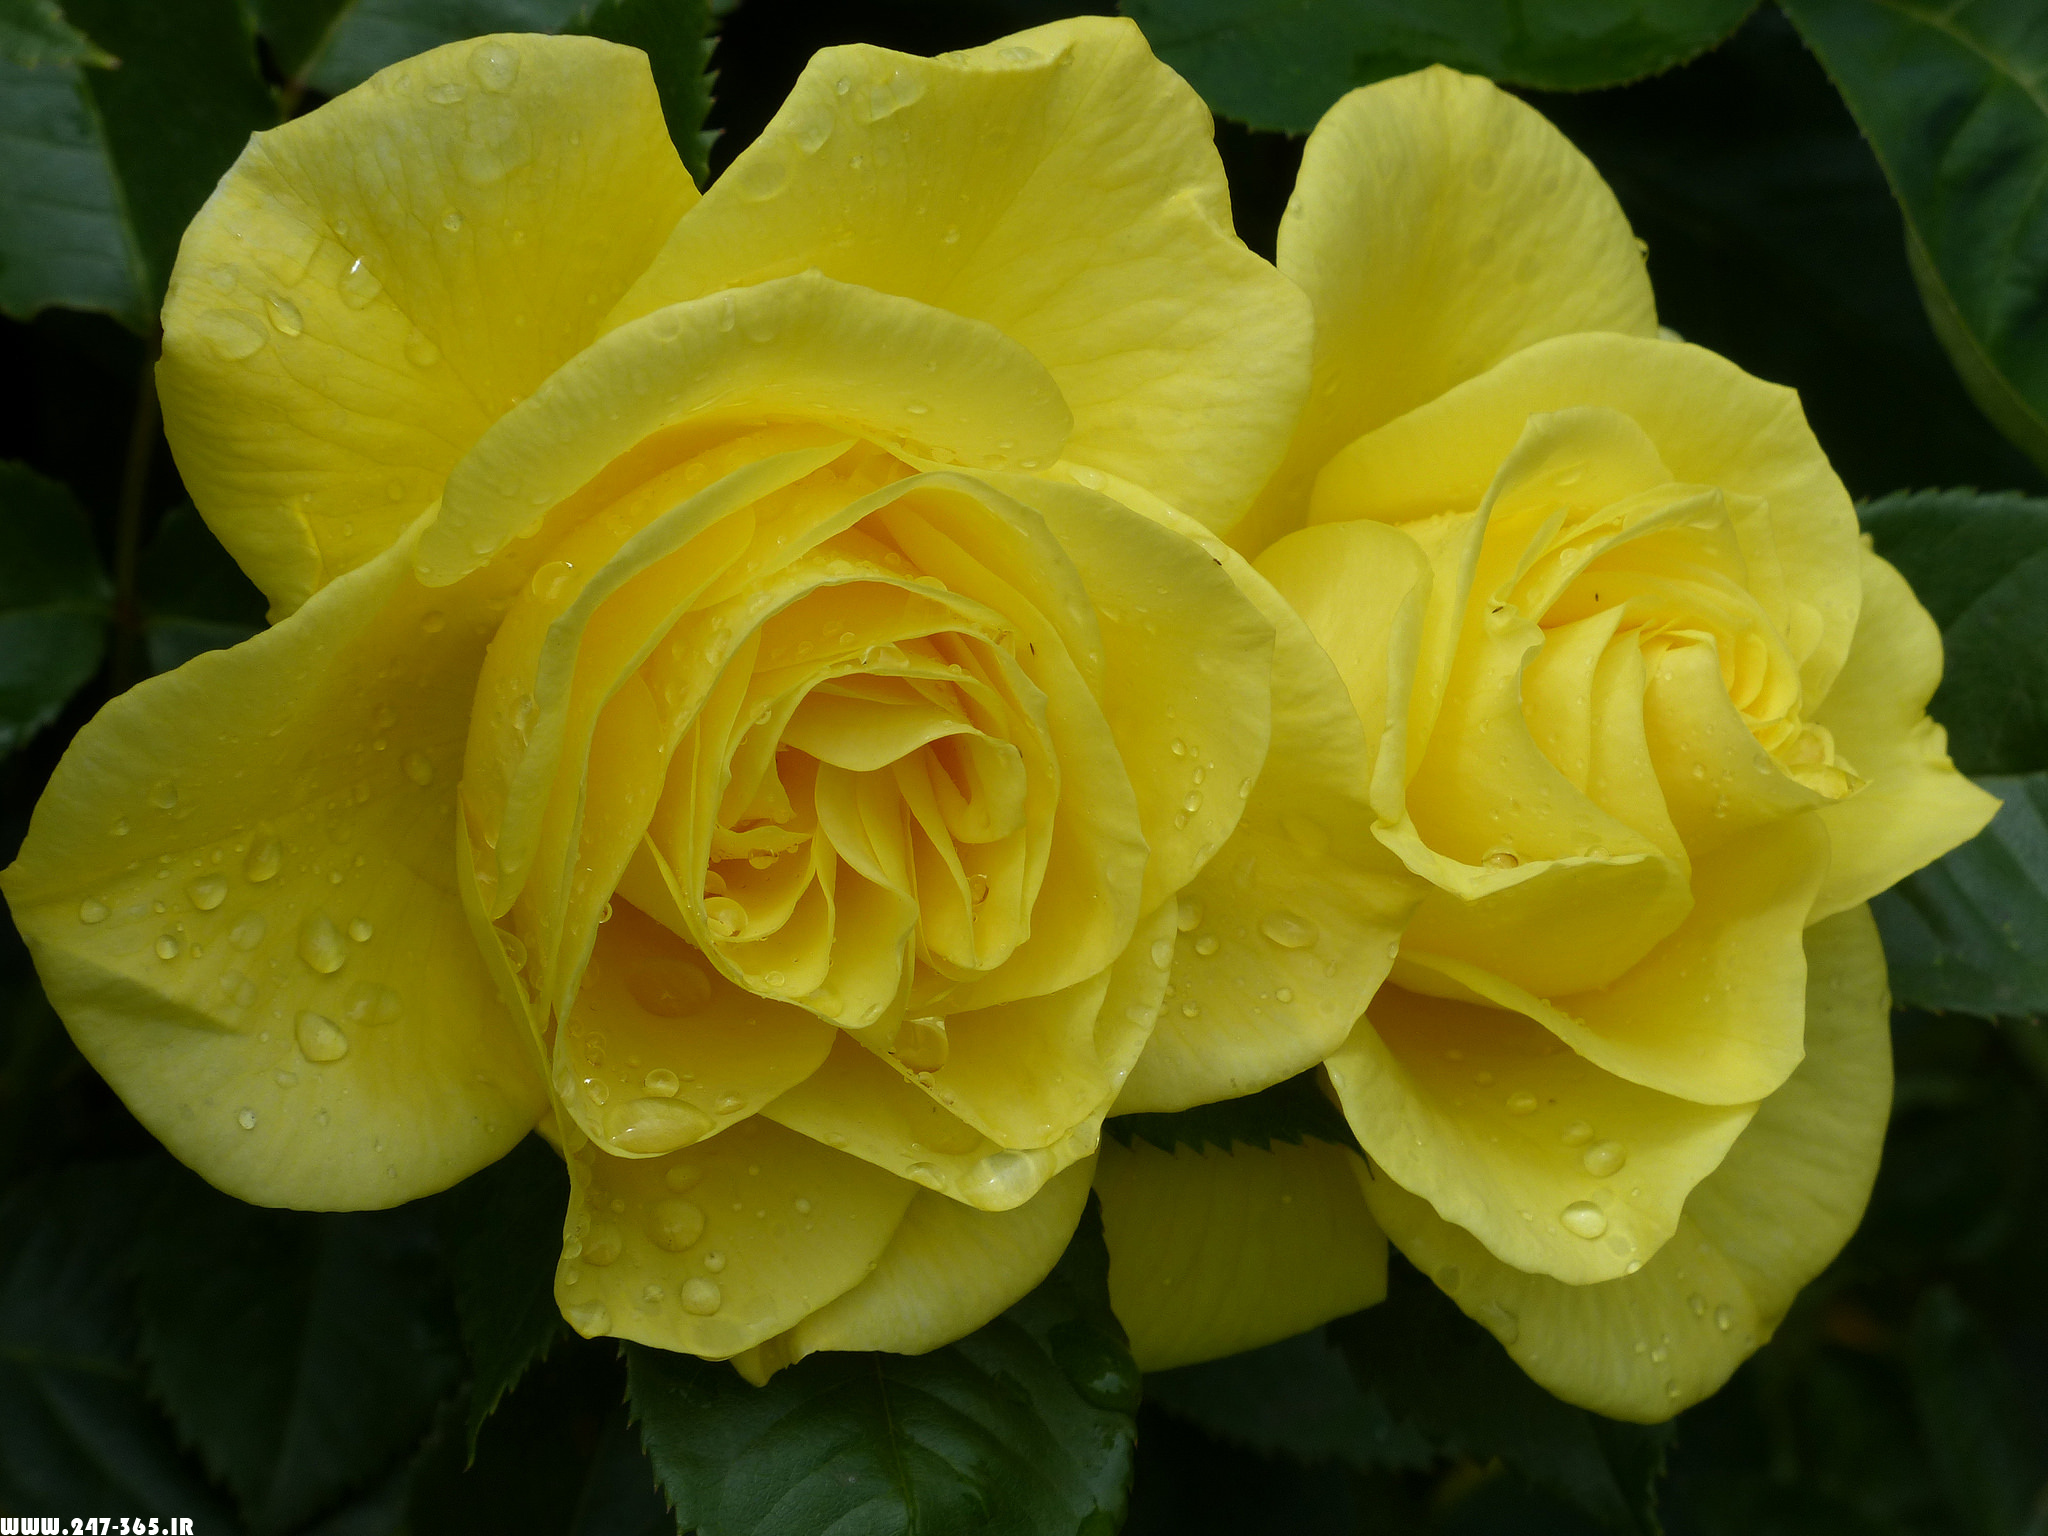 http://dl.247-365.ir/pic/gol/yellow_rose_2/Yellow_Rose_2_12.jpg